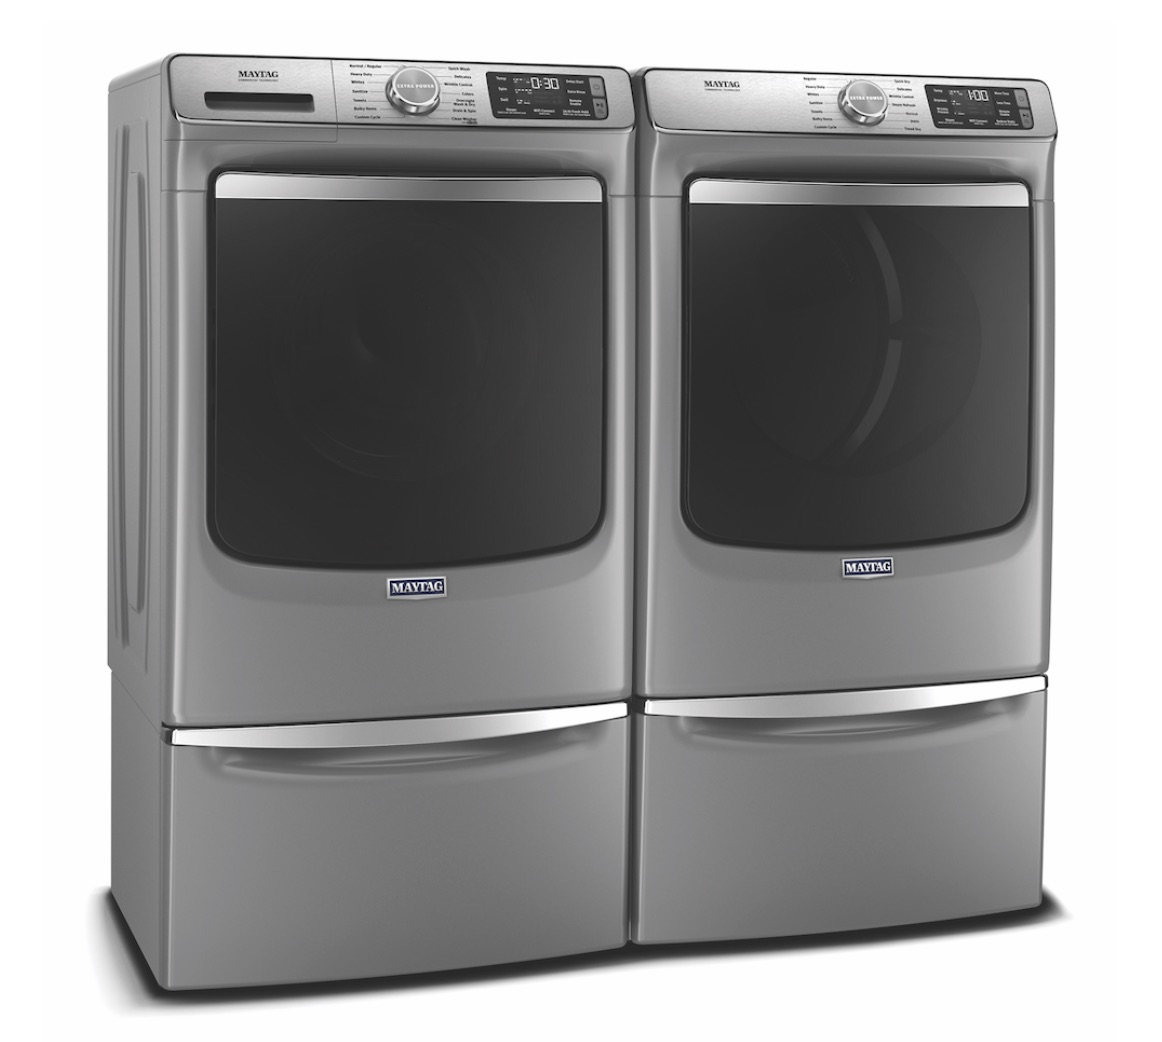 IBS products preview Maytag Smart Front Load Washer and Dryer